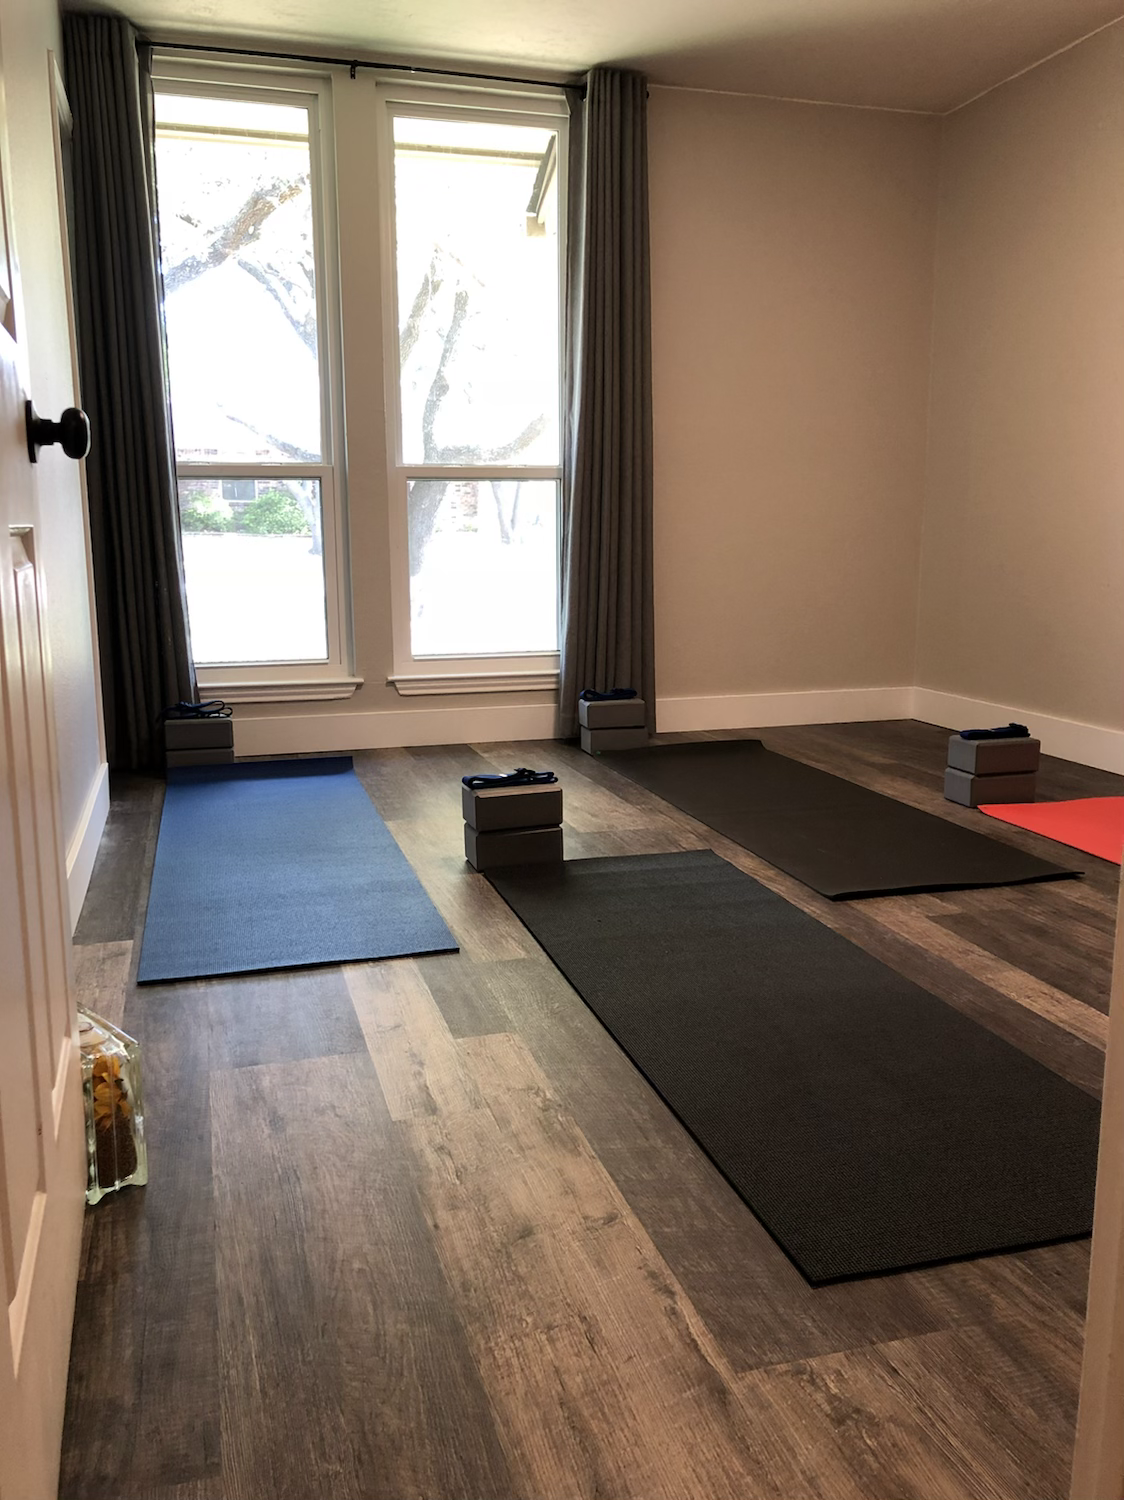 Personal Practice/Private Room